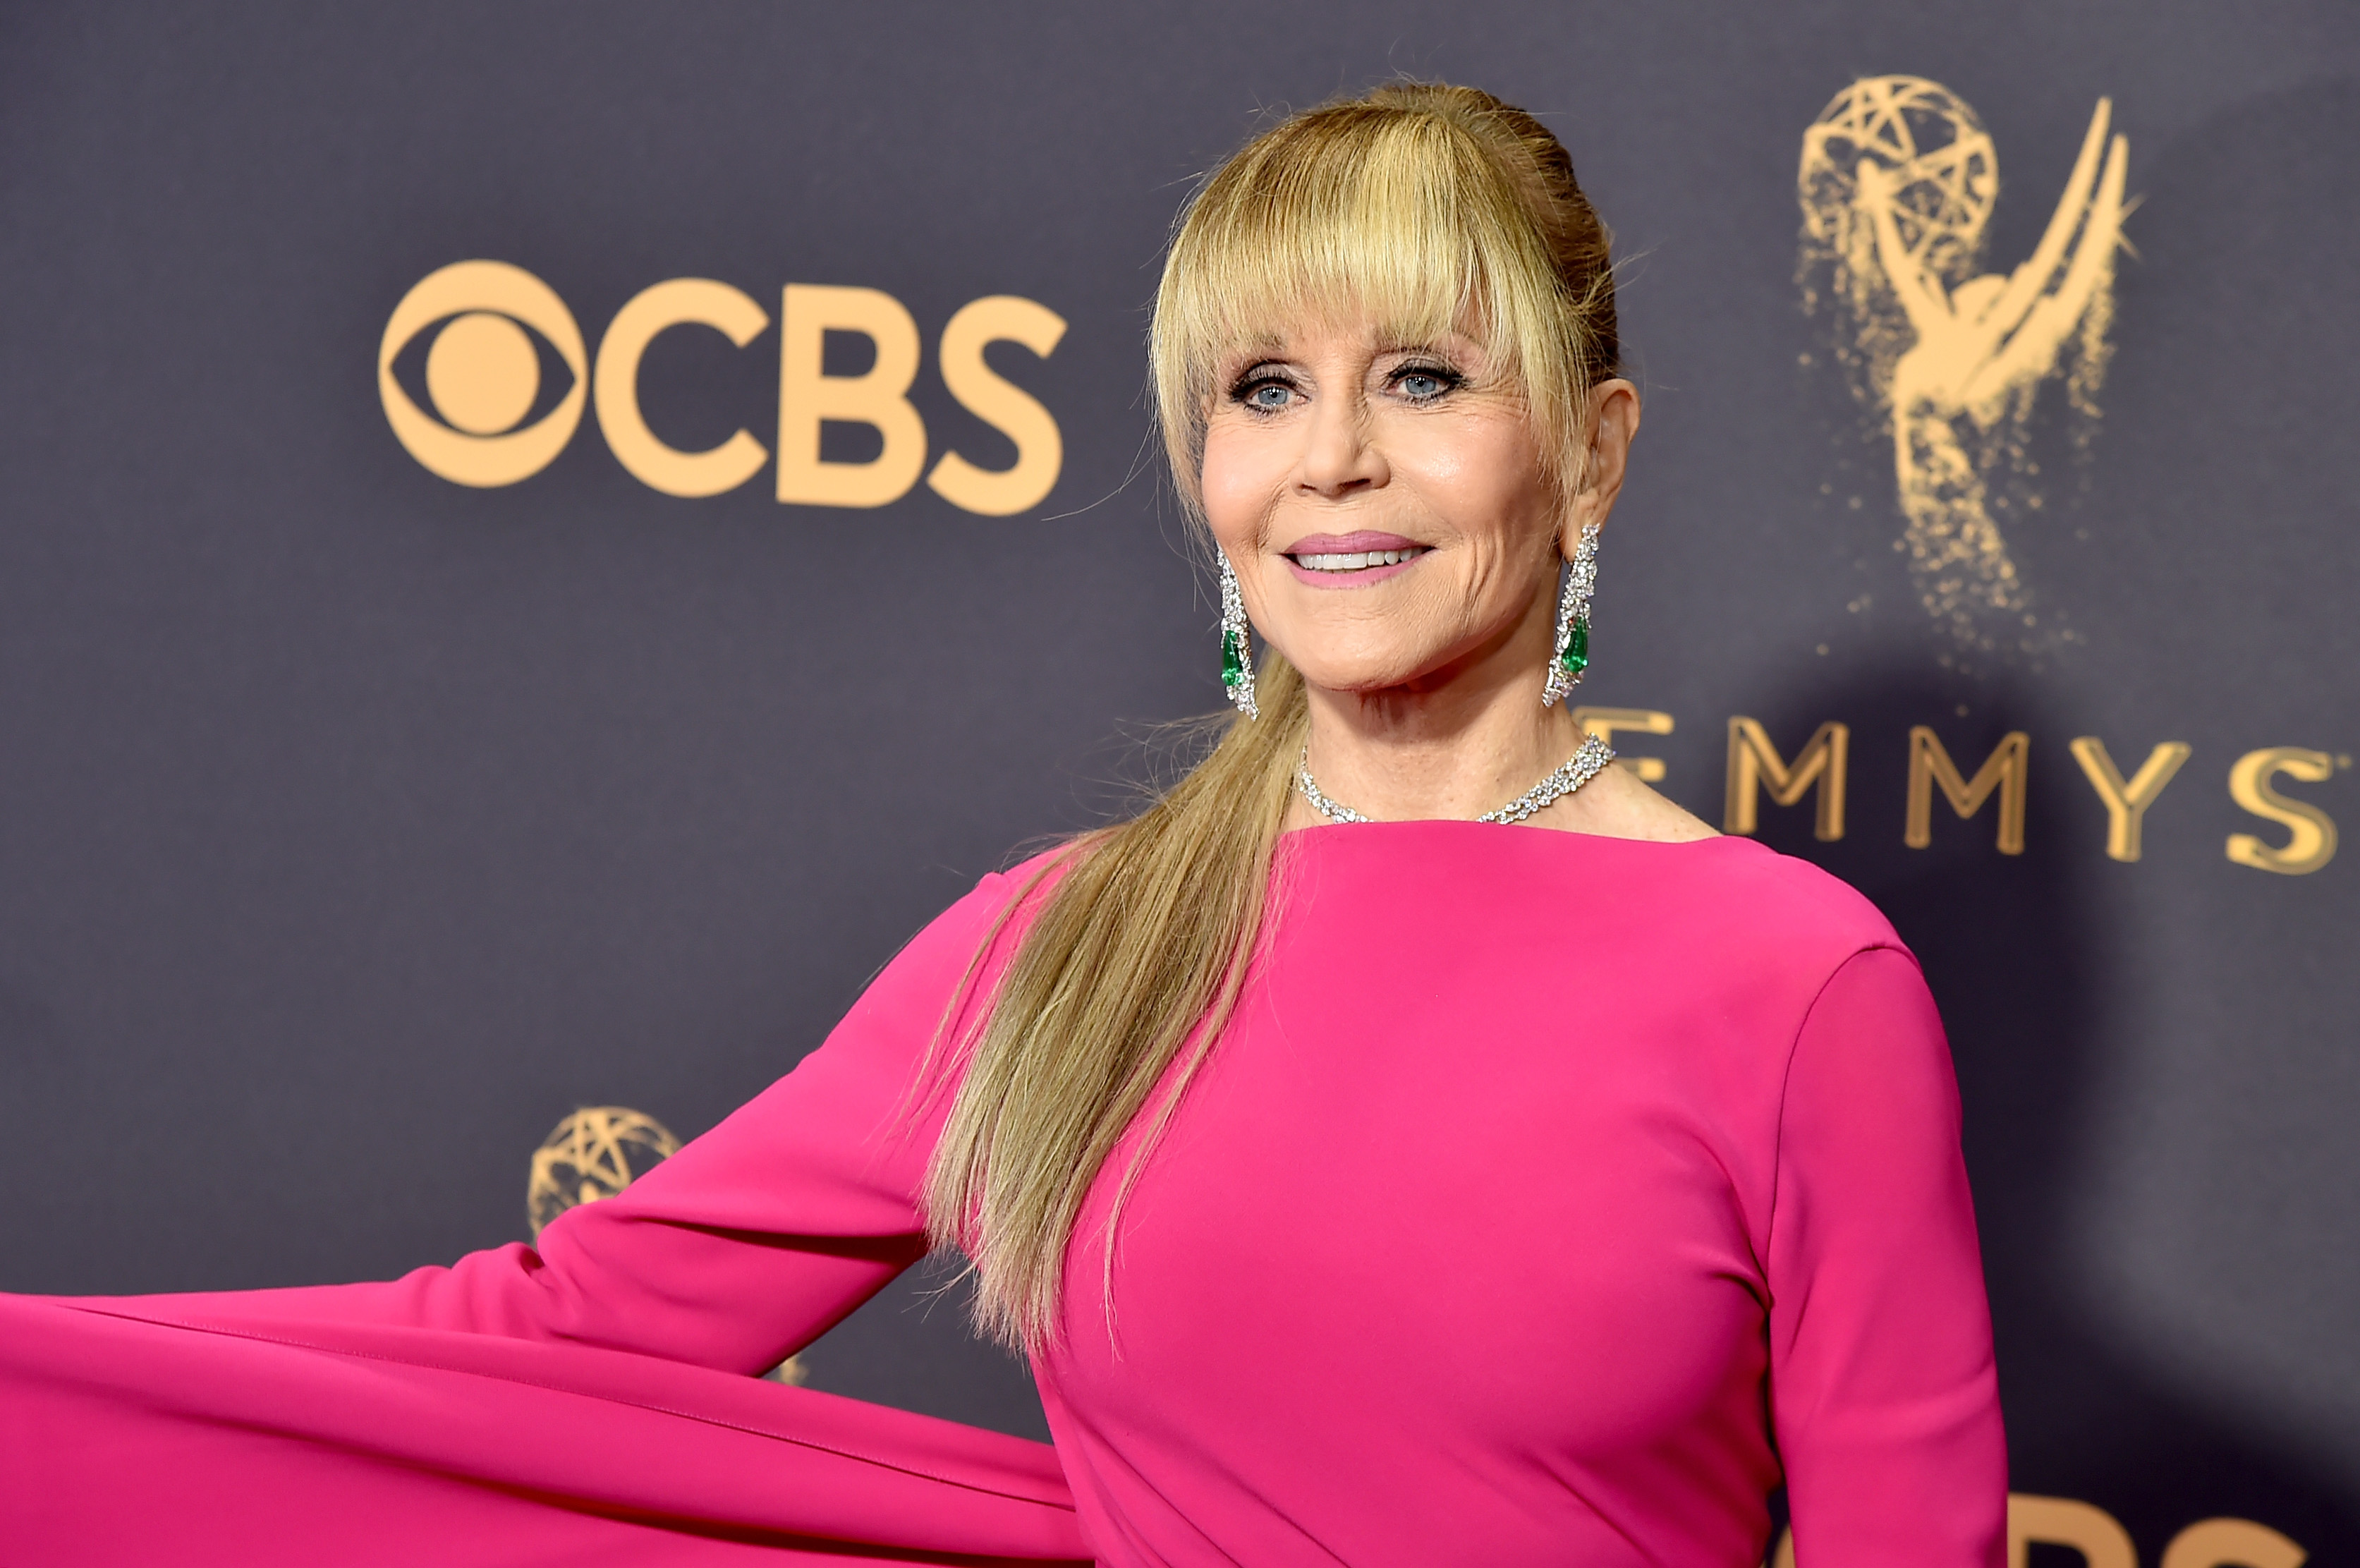 Actor Jane Fonda attends the 69th Annual Primetime Emmy Awards at Microsoft Theater on September 17, 2017 in Los Angeles, California.